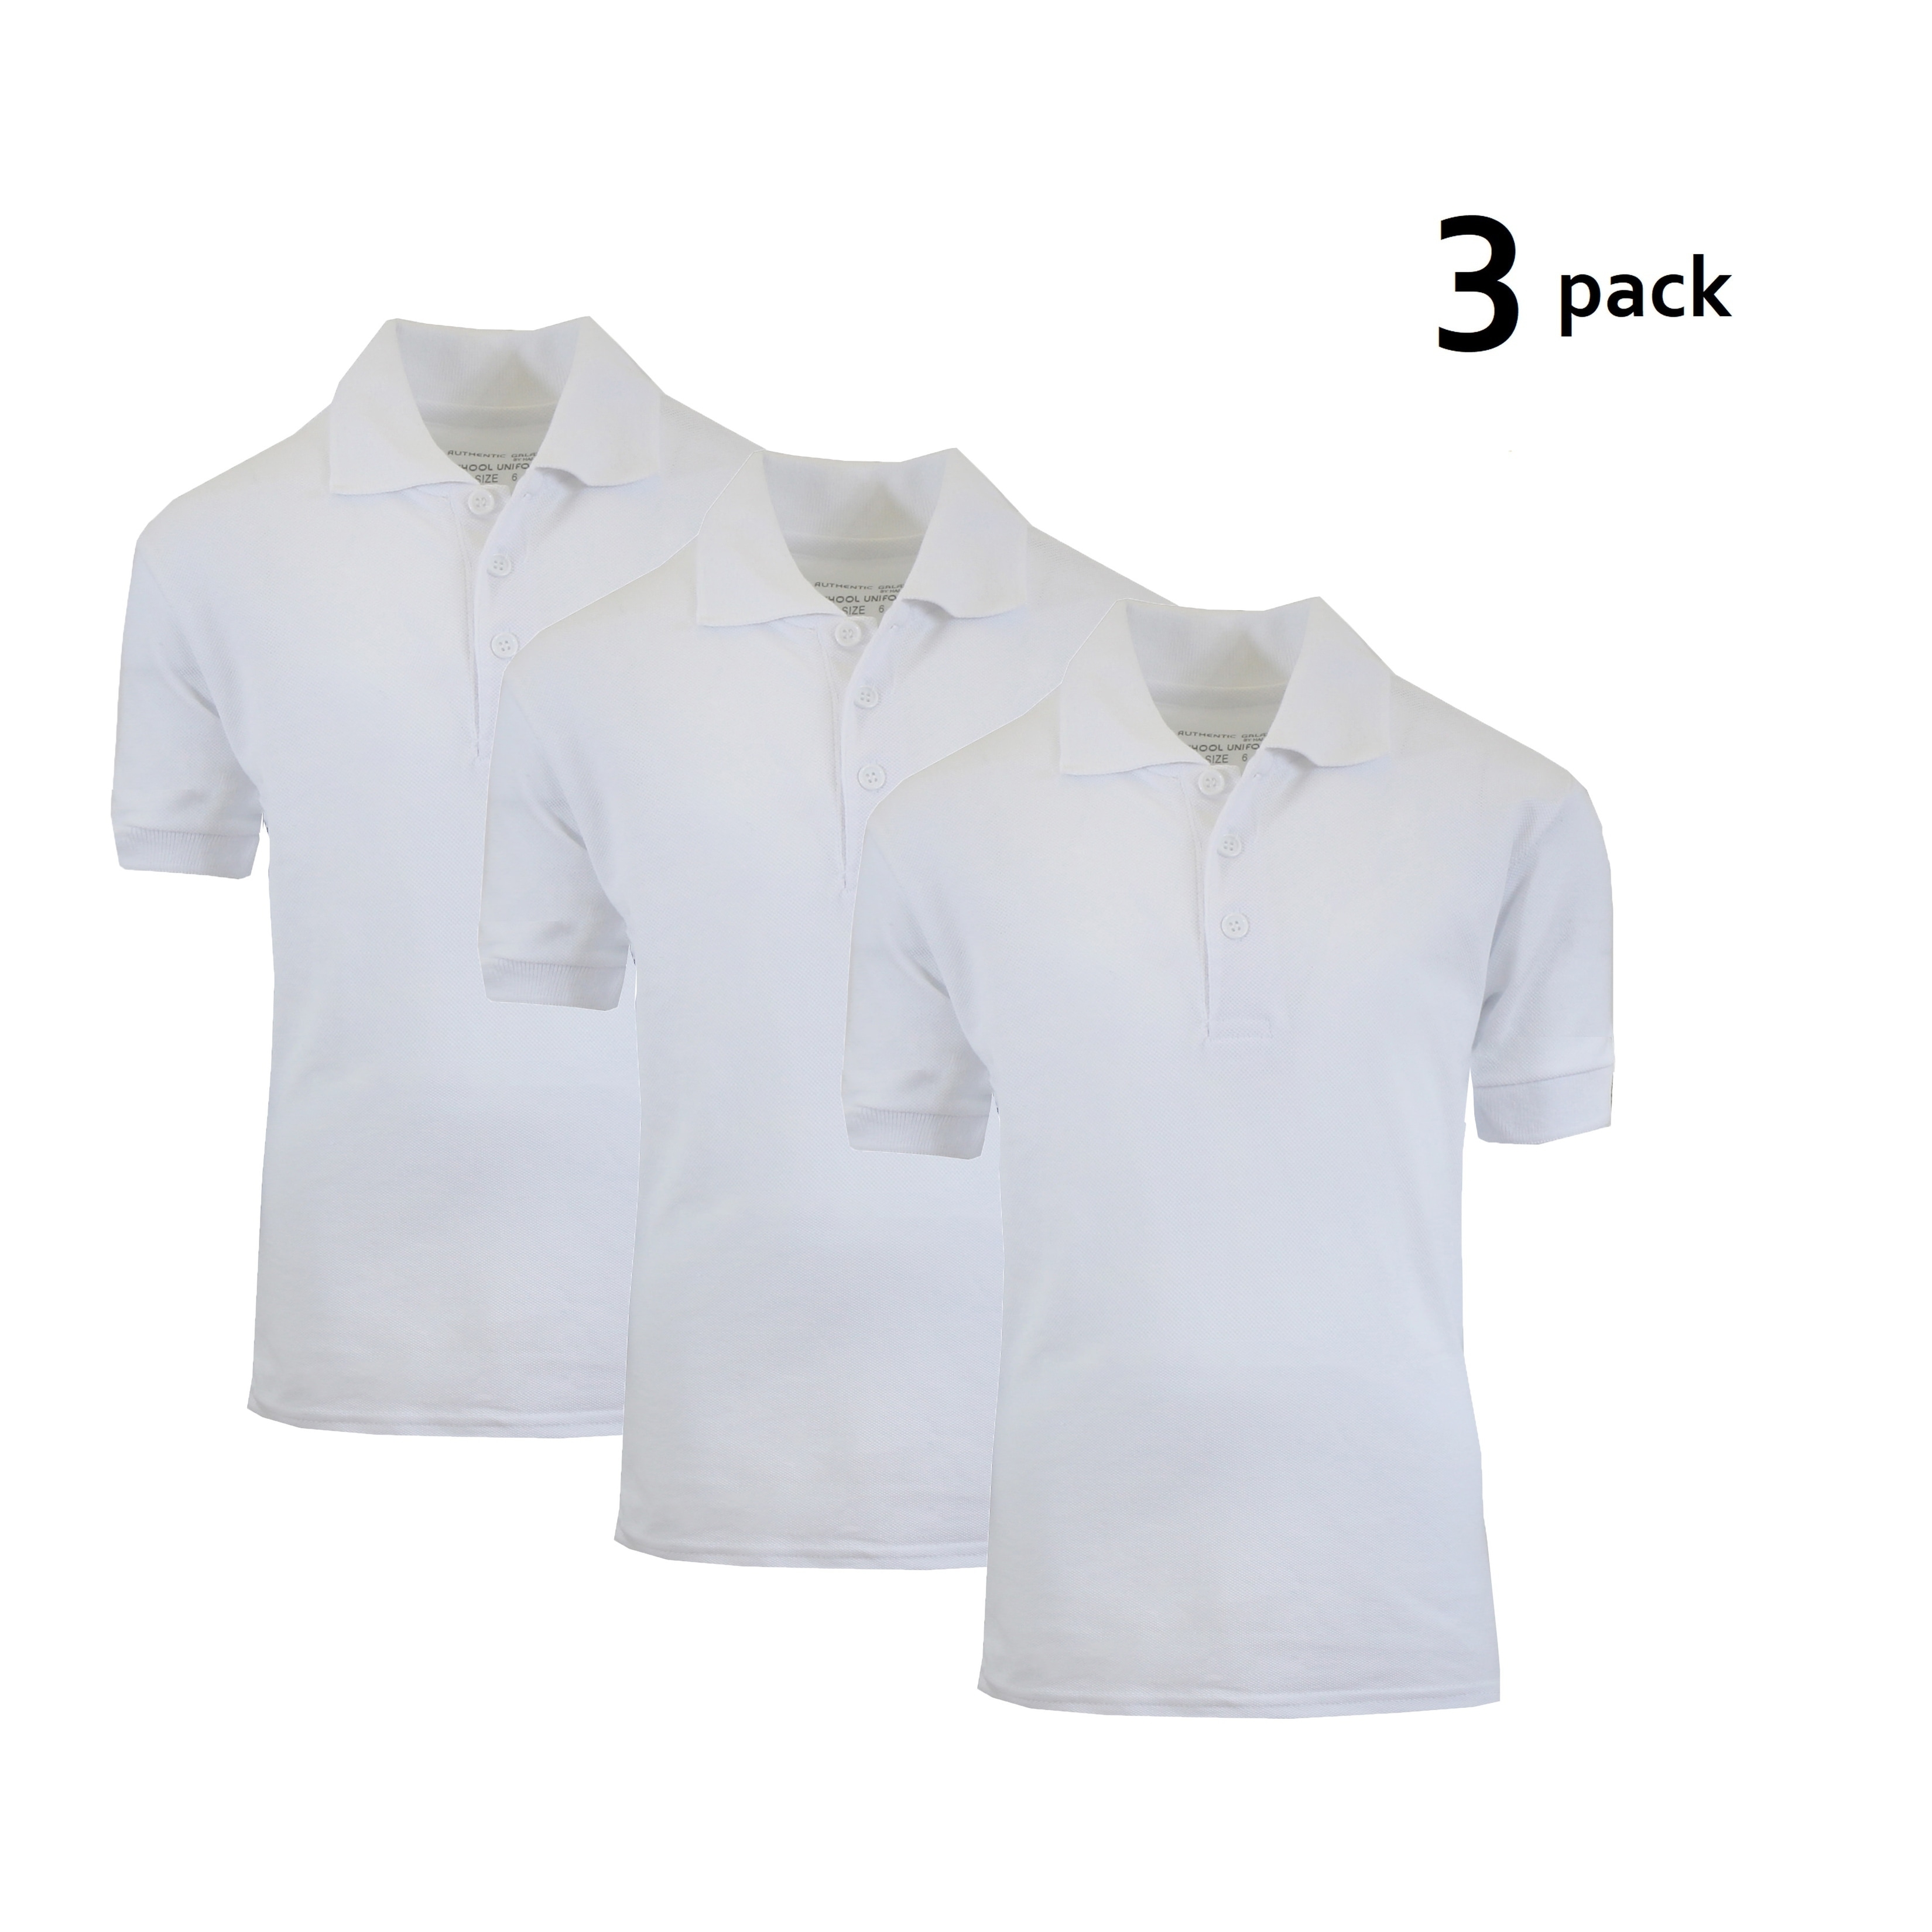 Shop Galaxy By Harvic Boys White Short Sleeve School Uniform Polo